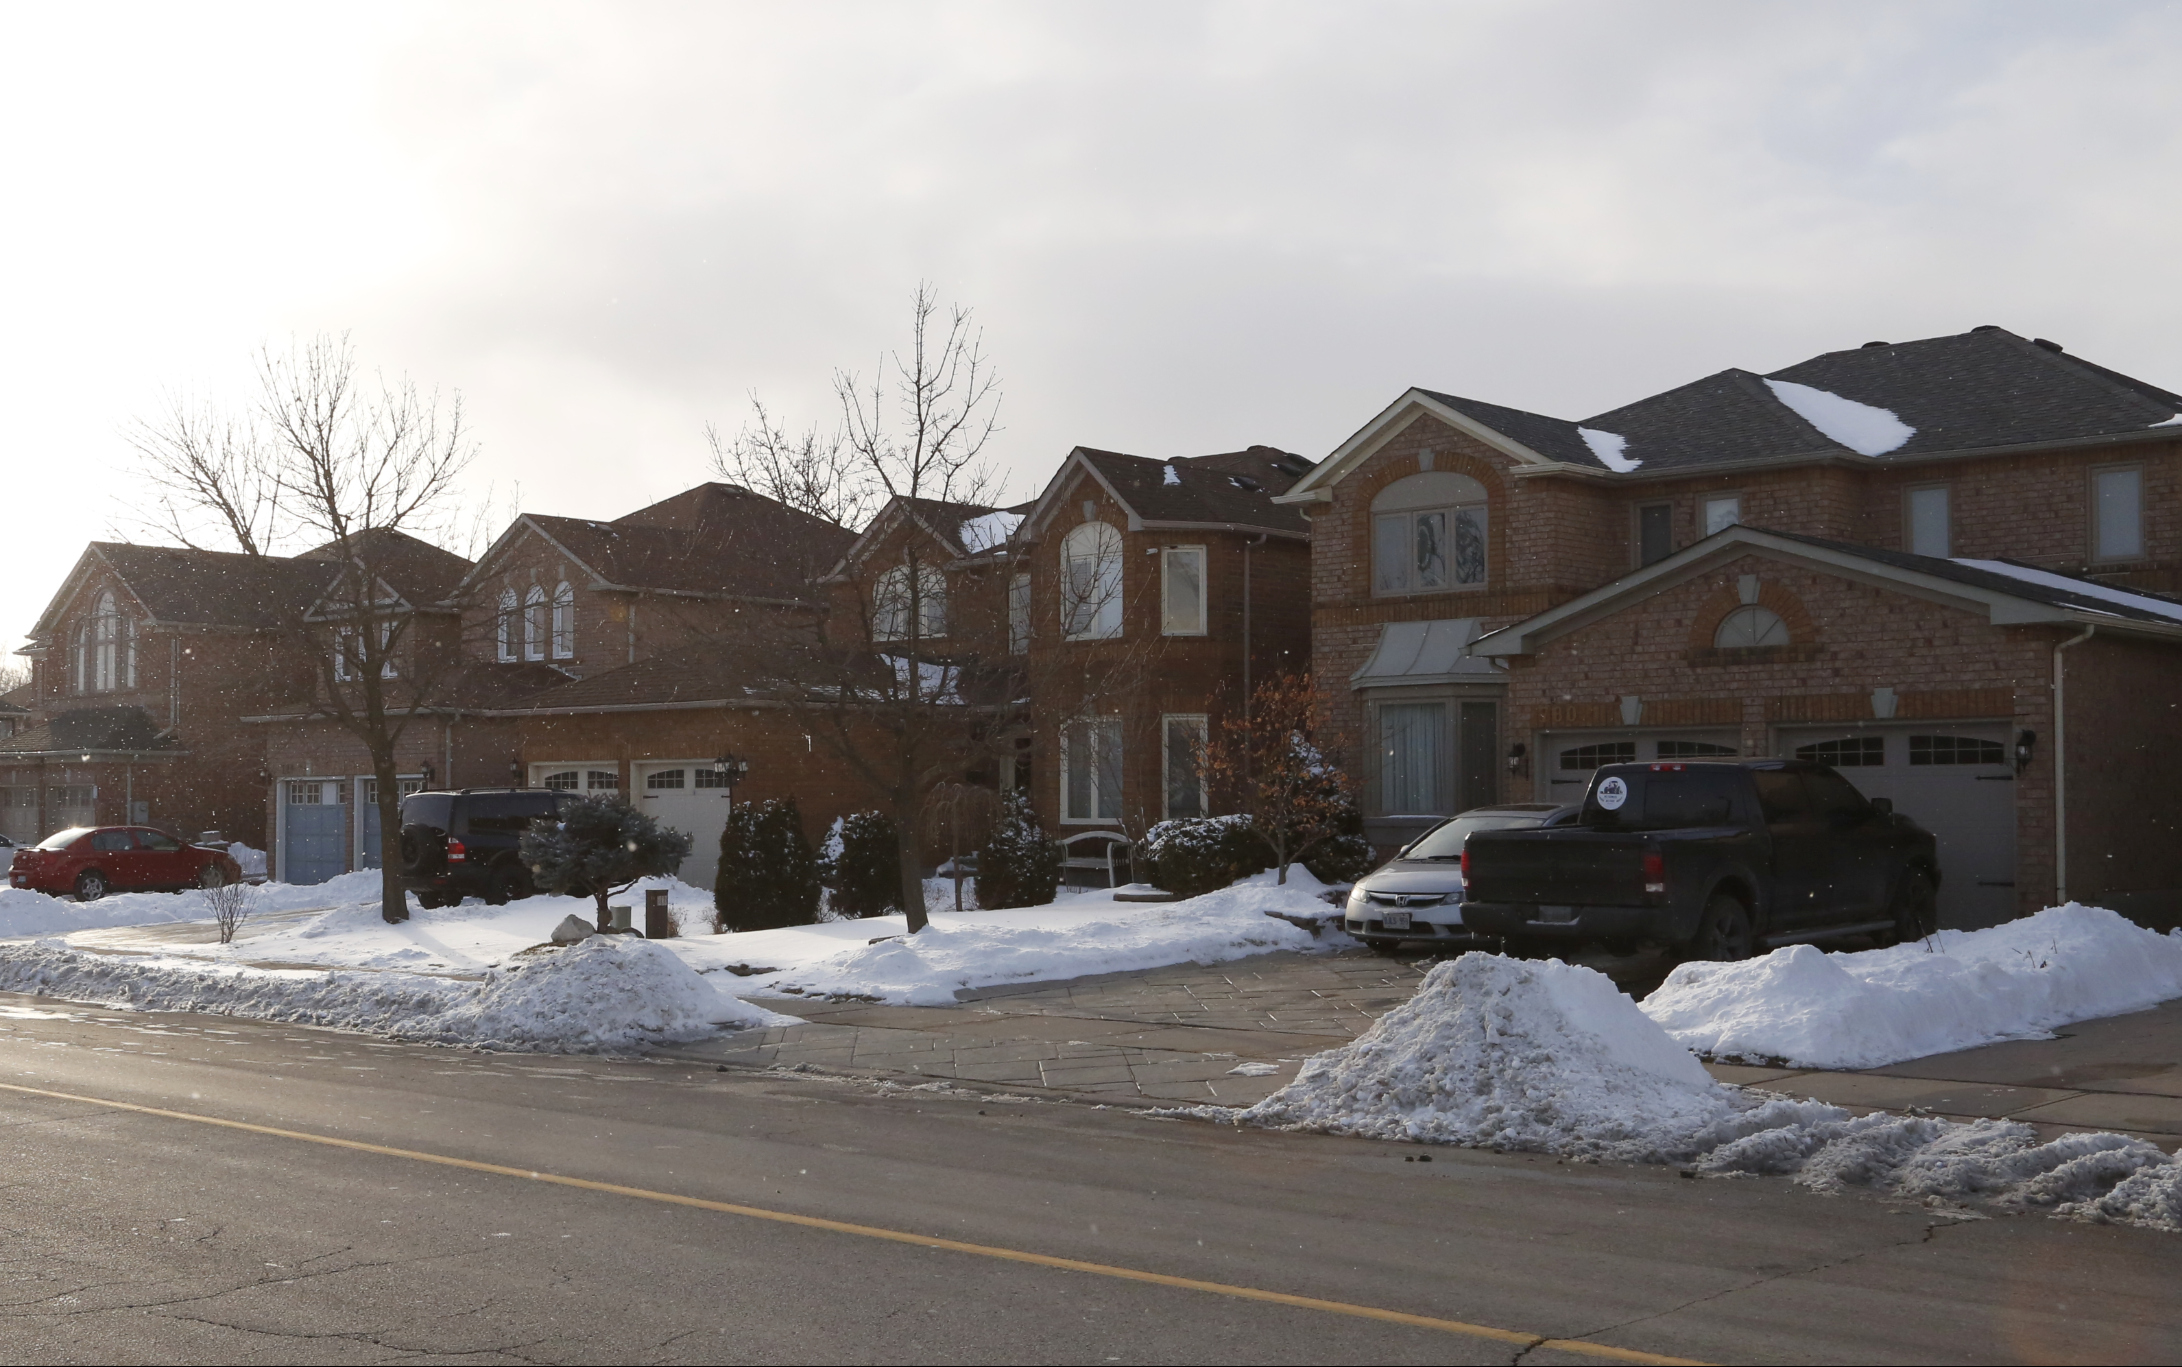 Photo of a row of single-family houses in Brampton illustrating typical housing in the city.